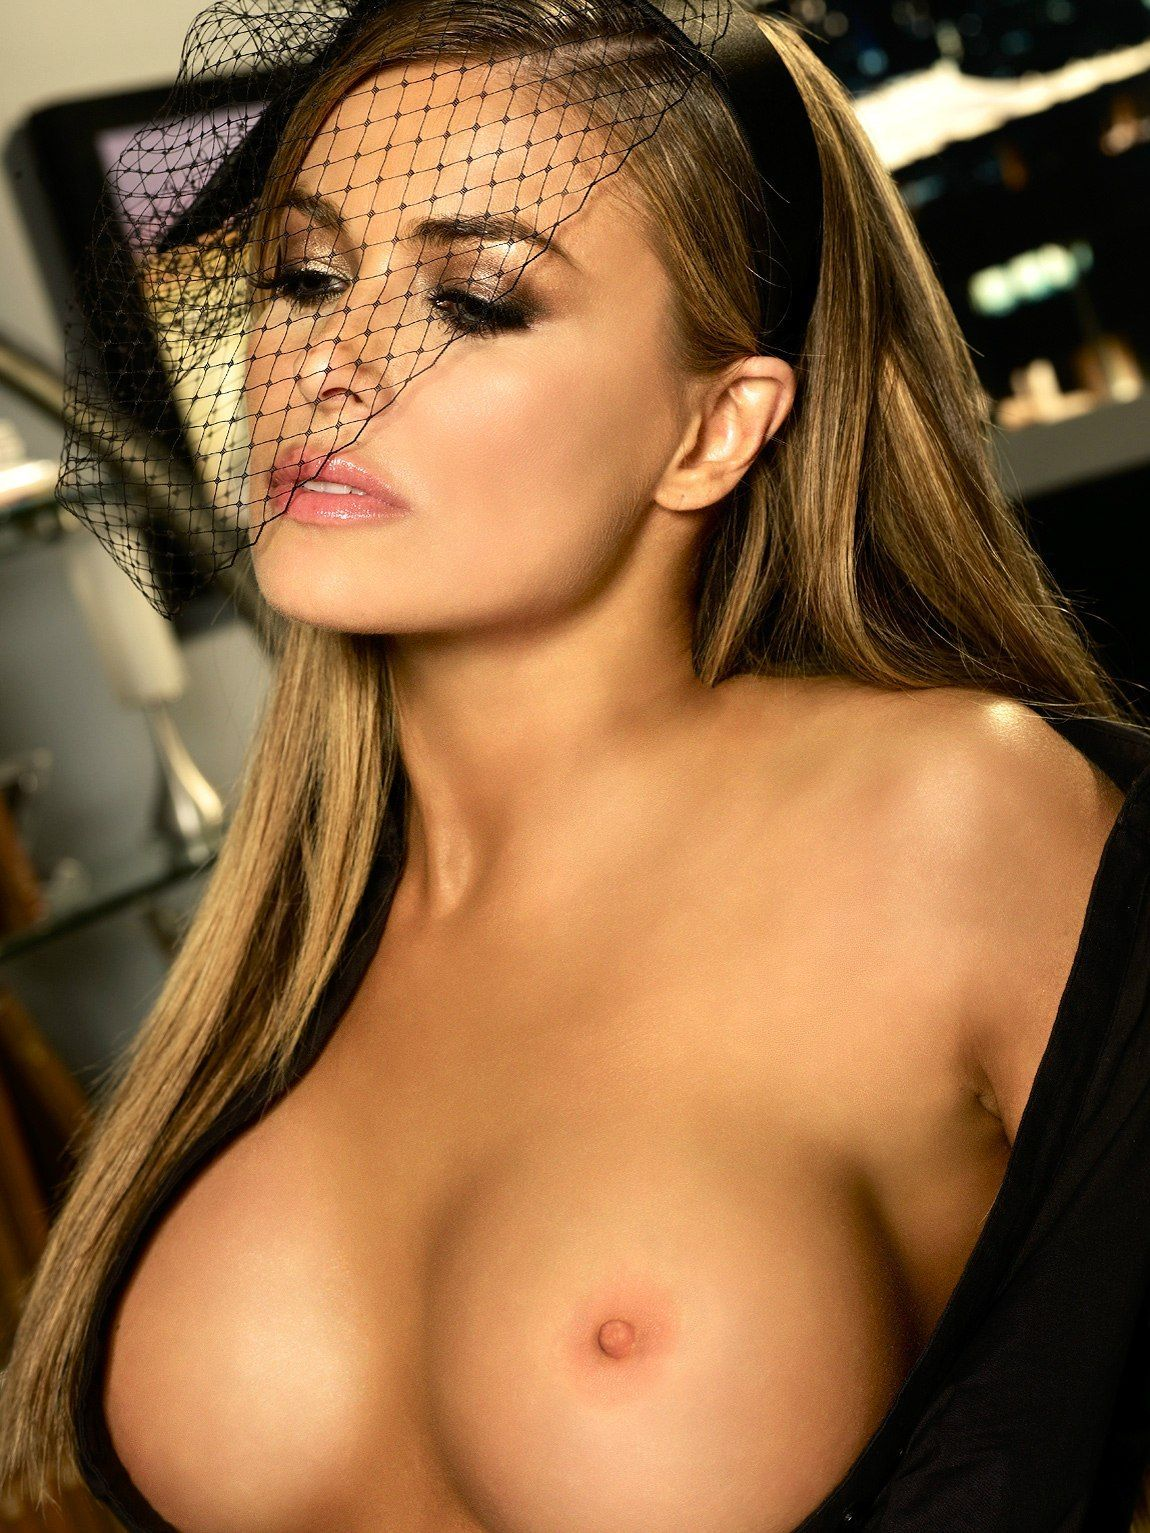 Porno carmen electra video gratis